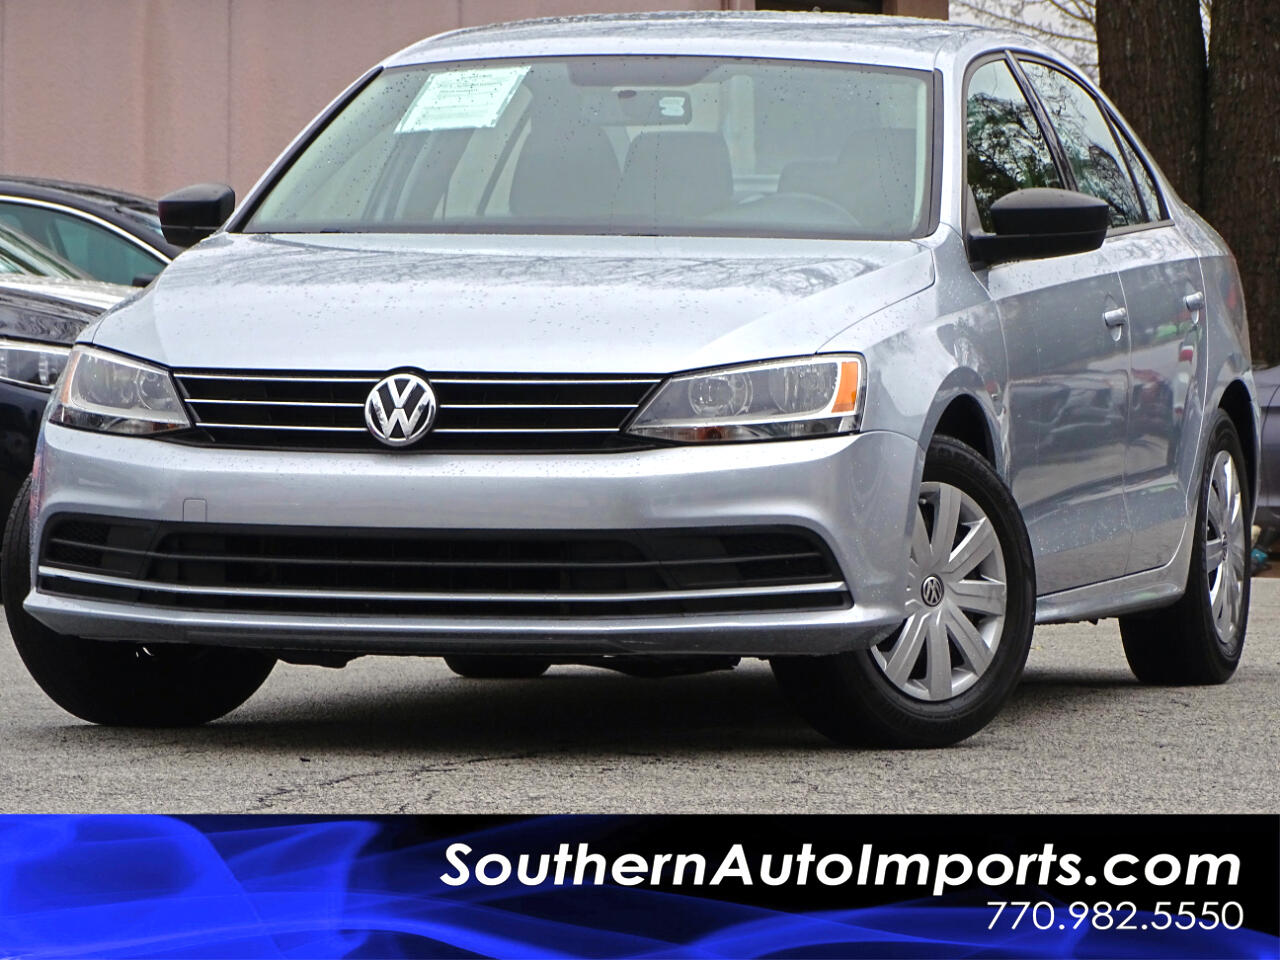 2015 Volkswagen Jetta Sedan 2.0 S w/Tech Pkg 5 spd Manual 1owner